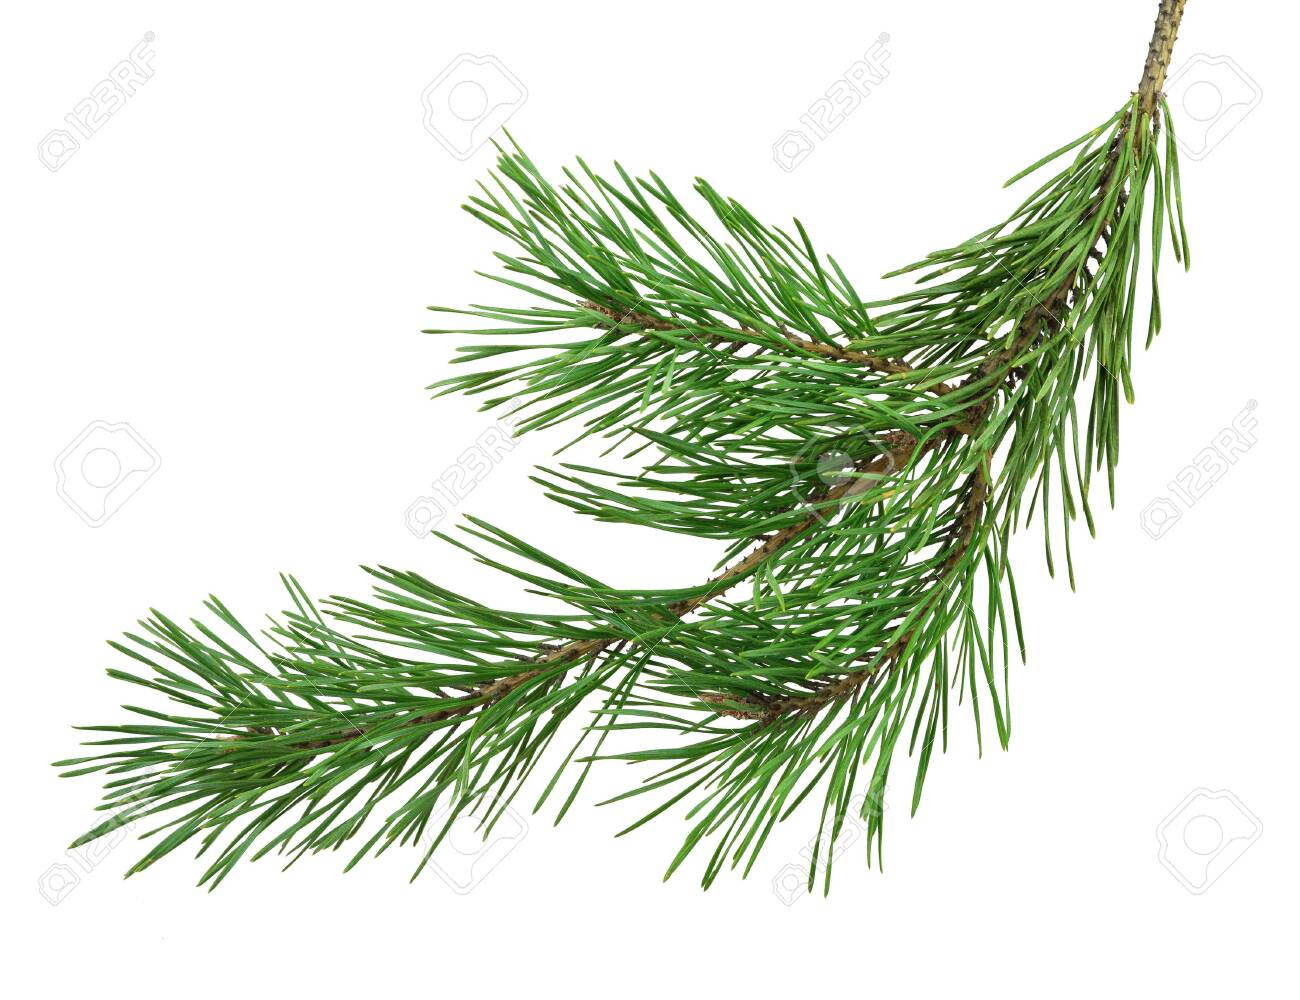 pine branch, close-up, isolated on a white background without a shadow. Nature in details. Winter festive decor. - 151446161